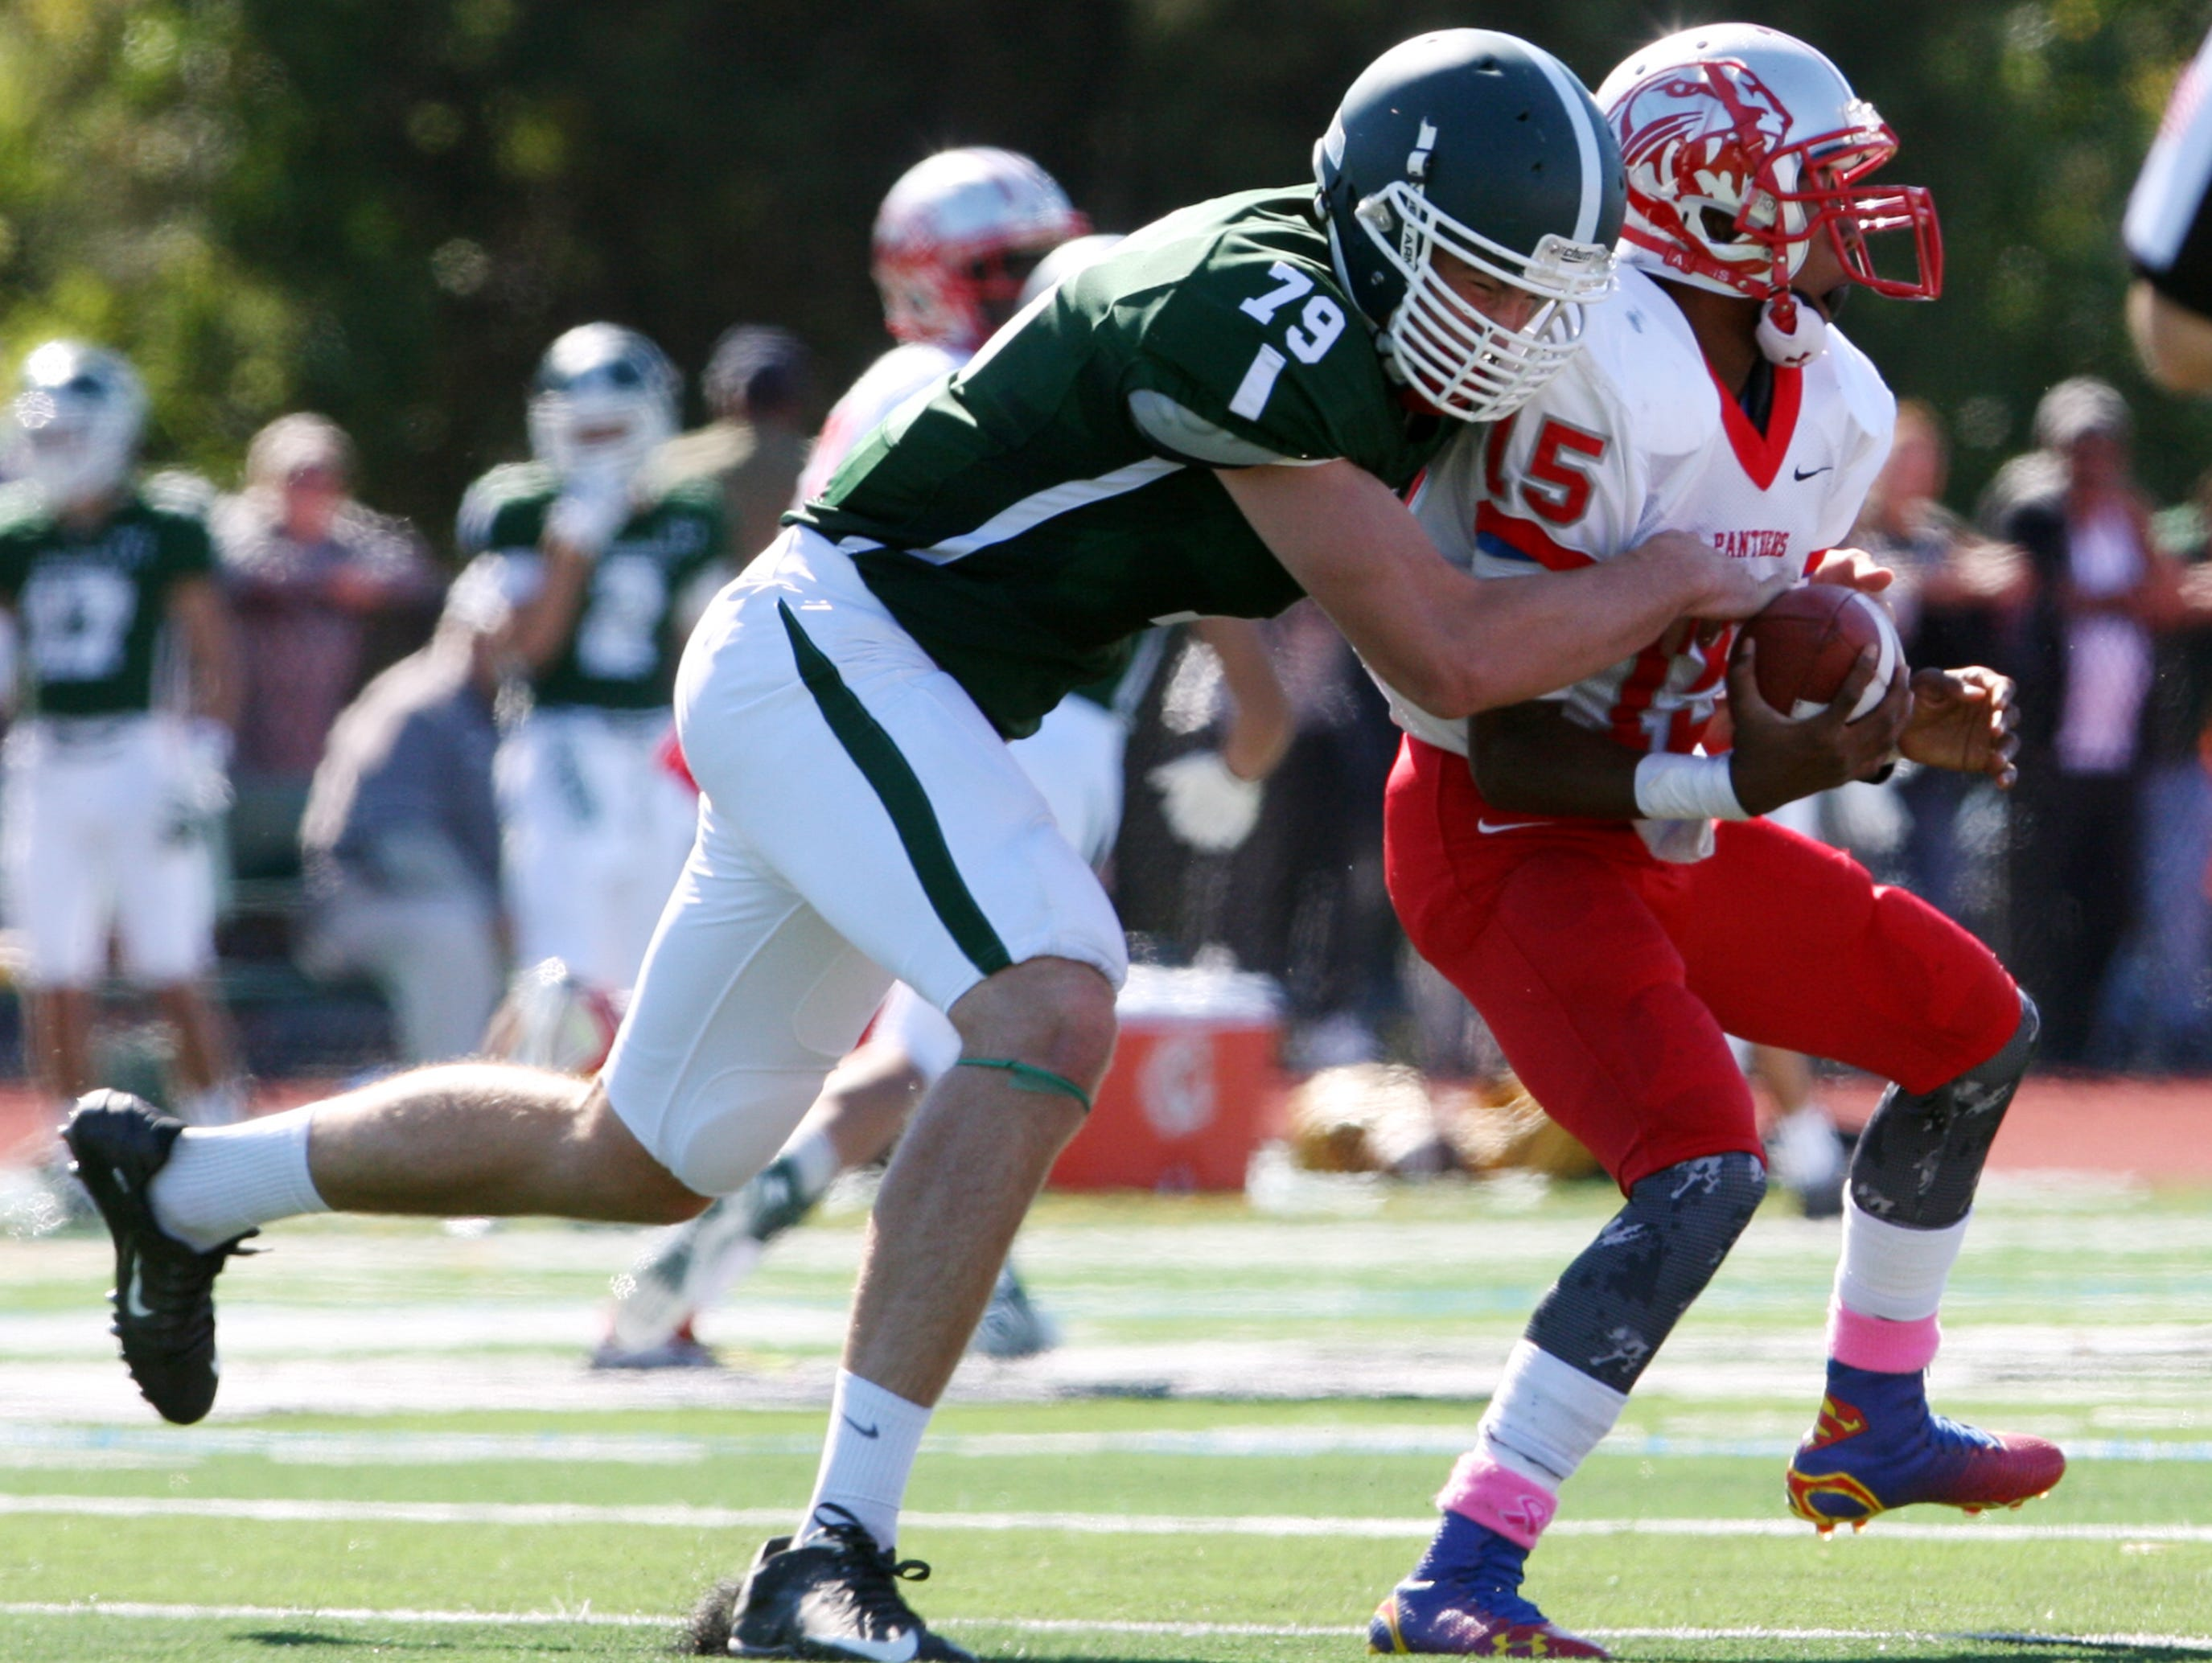 Action photos from the Perth Amboy High School at St. Joseph football game held at St. Joseph's new turf field in Metuhen on Saturday October 10, 2015. Here St. Joseph's # 79 (left)- Bryan Carley sacks Perth Amboy quarterback # 15 (right) Tahjmere Oneal.